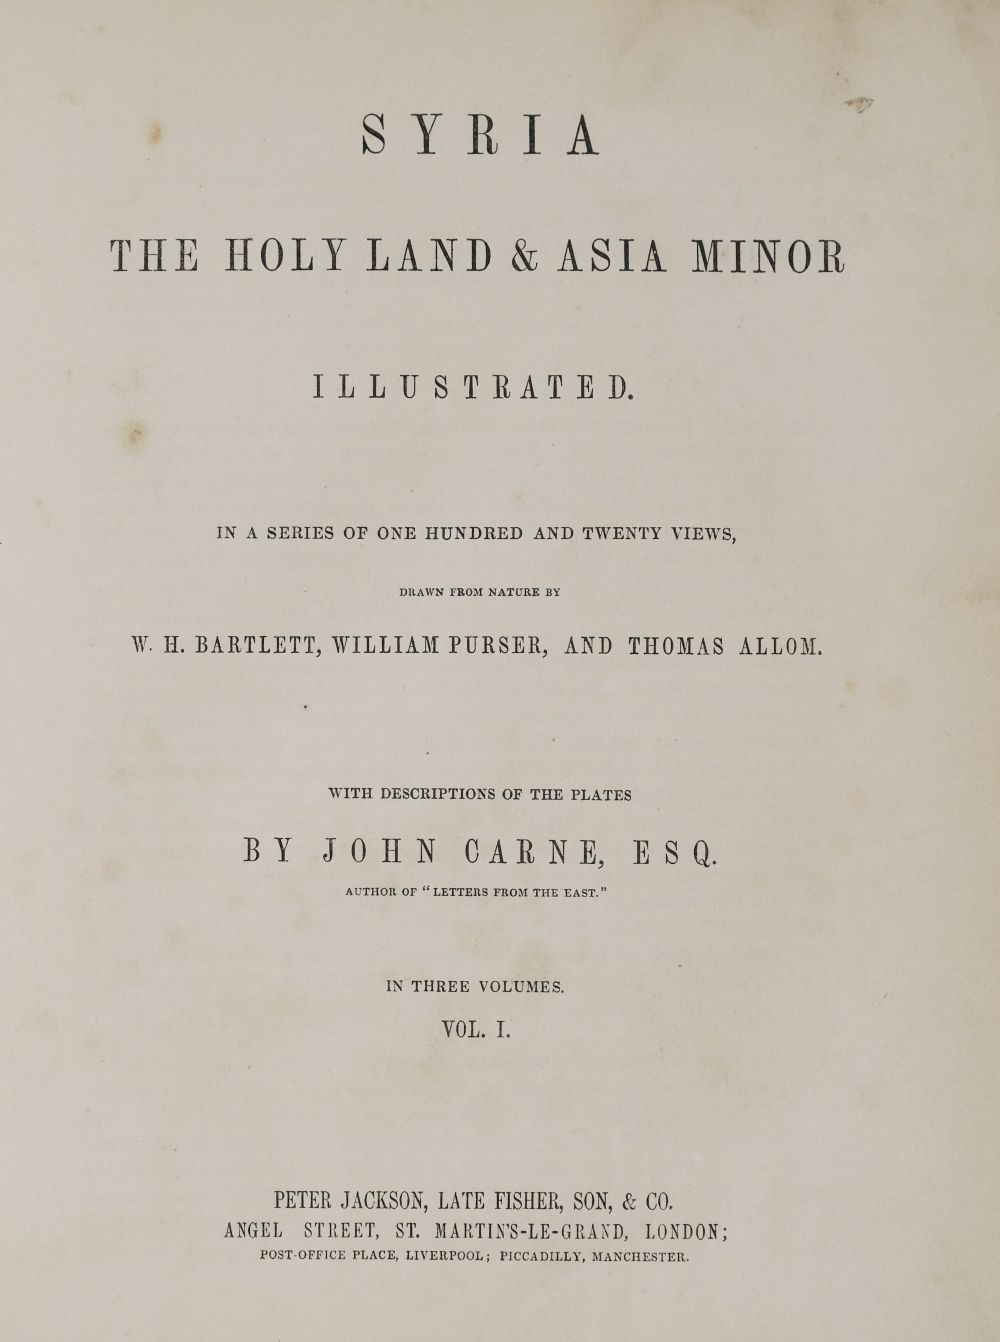 Carne (John). Syria, The Holy Land & Asia Minor Illustrated, c.1842